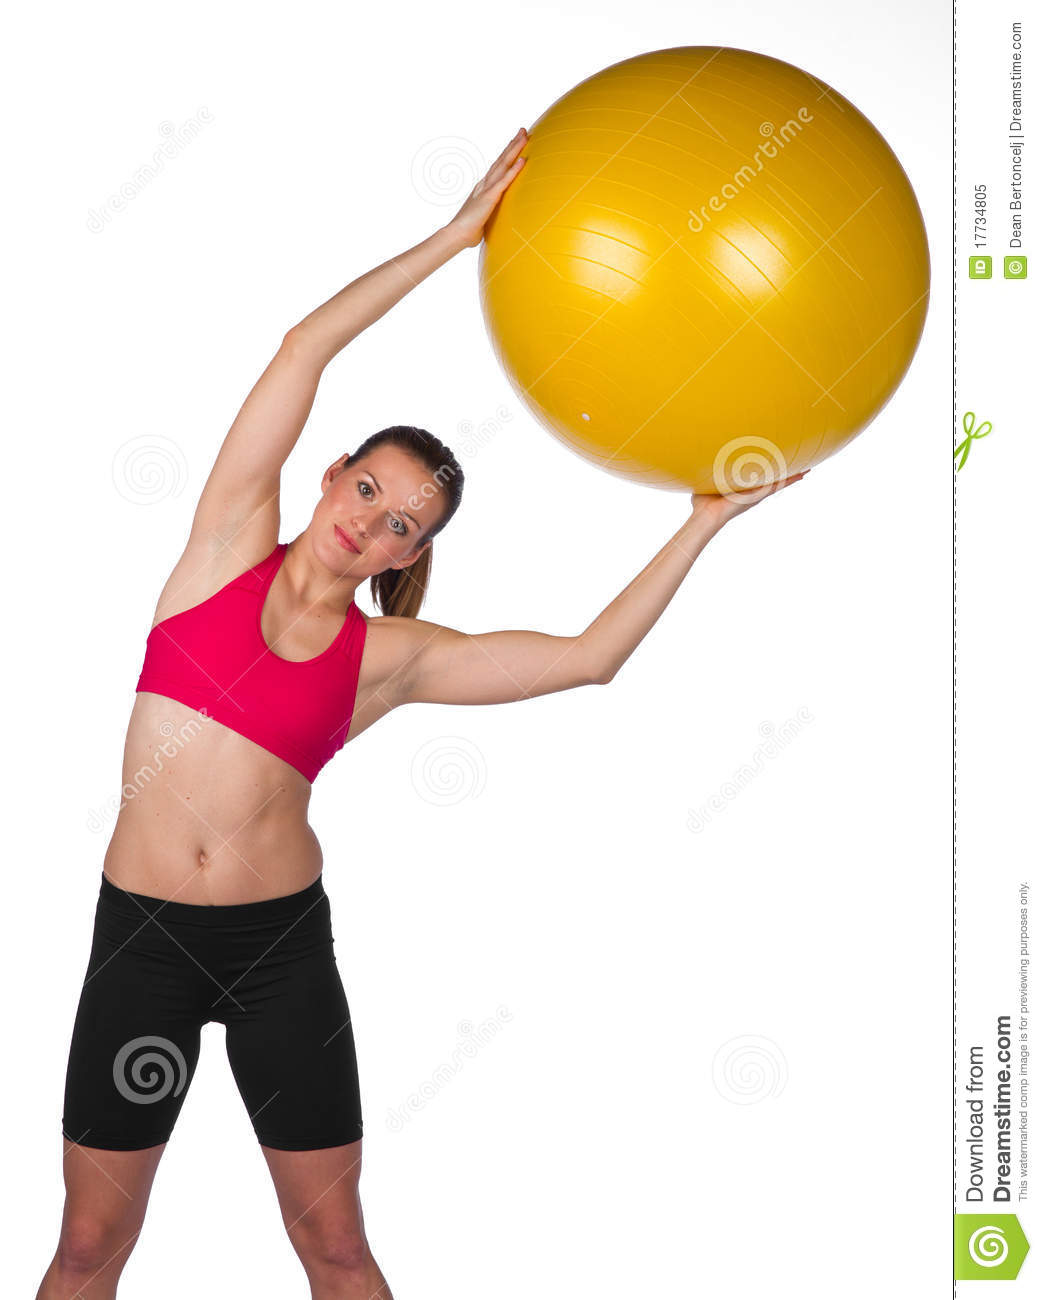 Woman Pilates Chair Exercises Fitness Stock Photo: Woman Exercise With Pilates Ball Stock Image